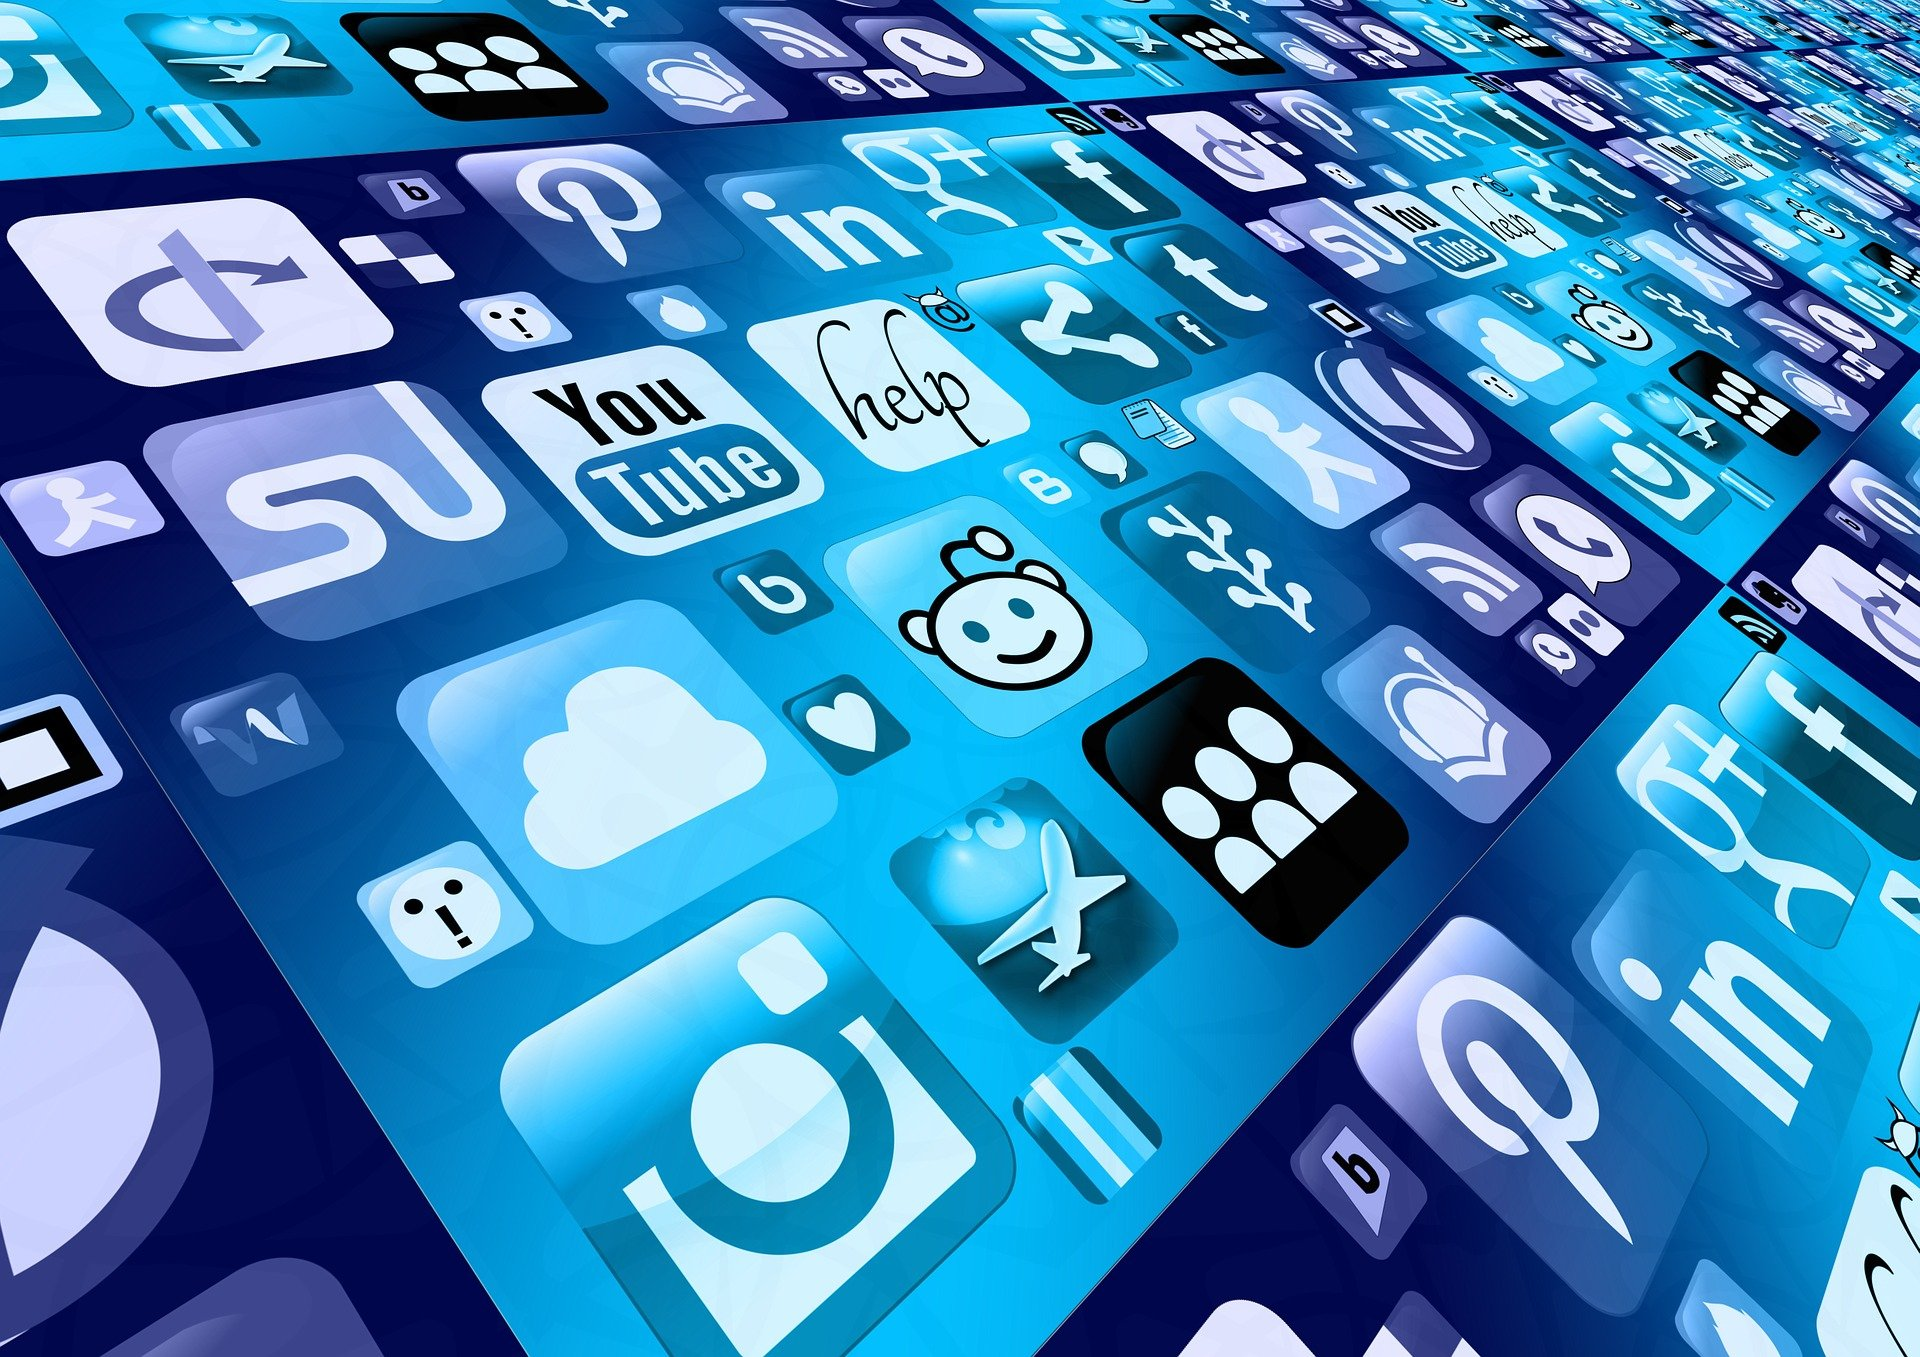 Icons for apps and social networks